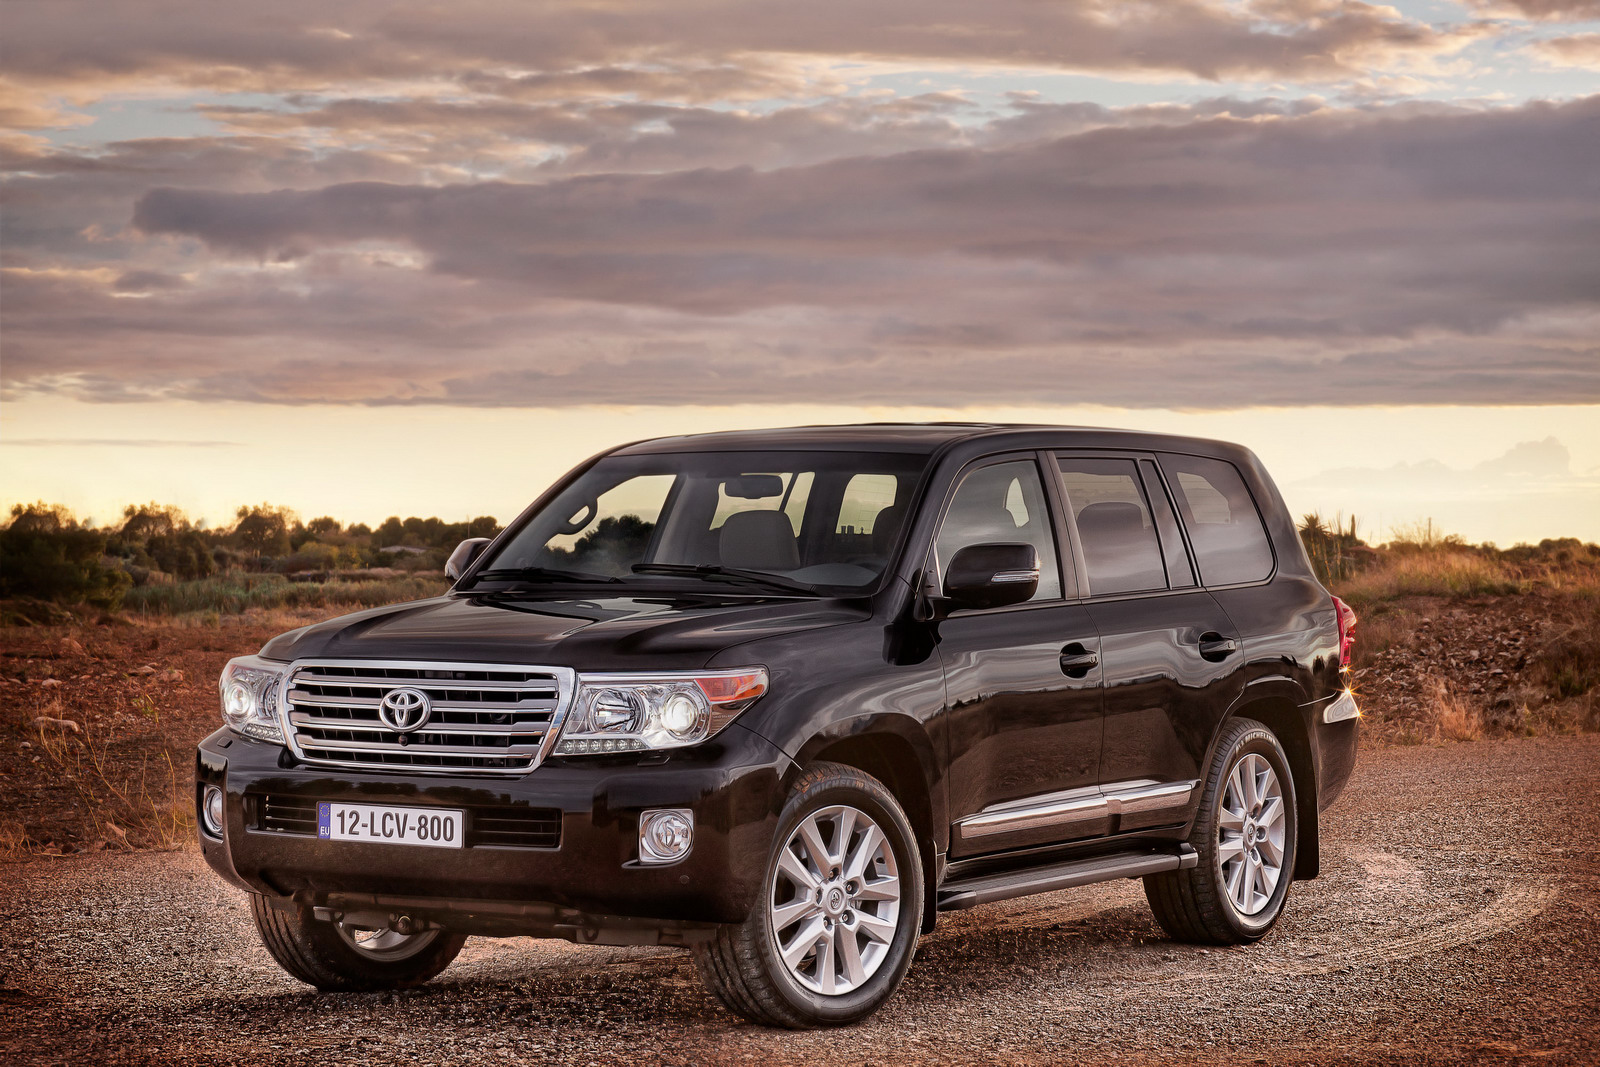 2013 toyota land cruiser v8 facelift confirmed for us autoevolution. Black Bedroom Furniture Sets. Home Design Ideas